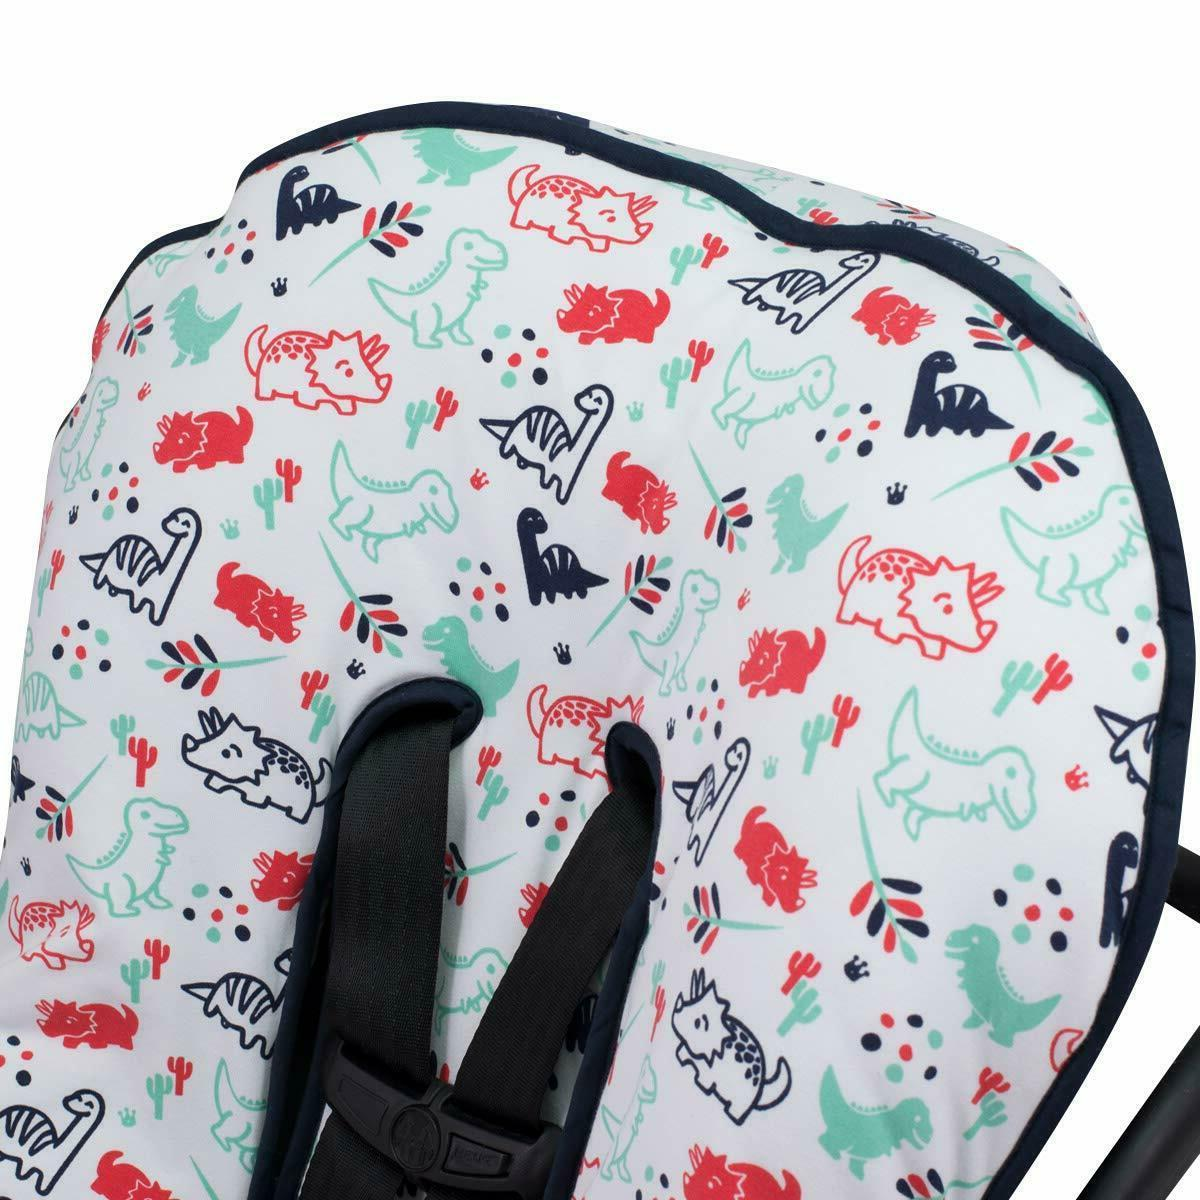 JANABEBÉ Universal Cover Liner for Baby Carriers and CAR